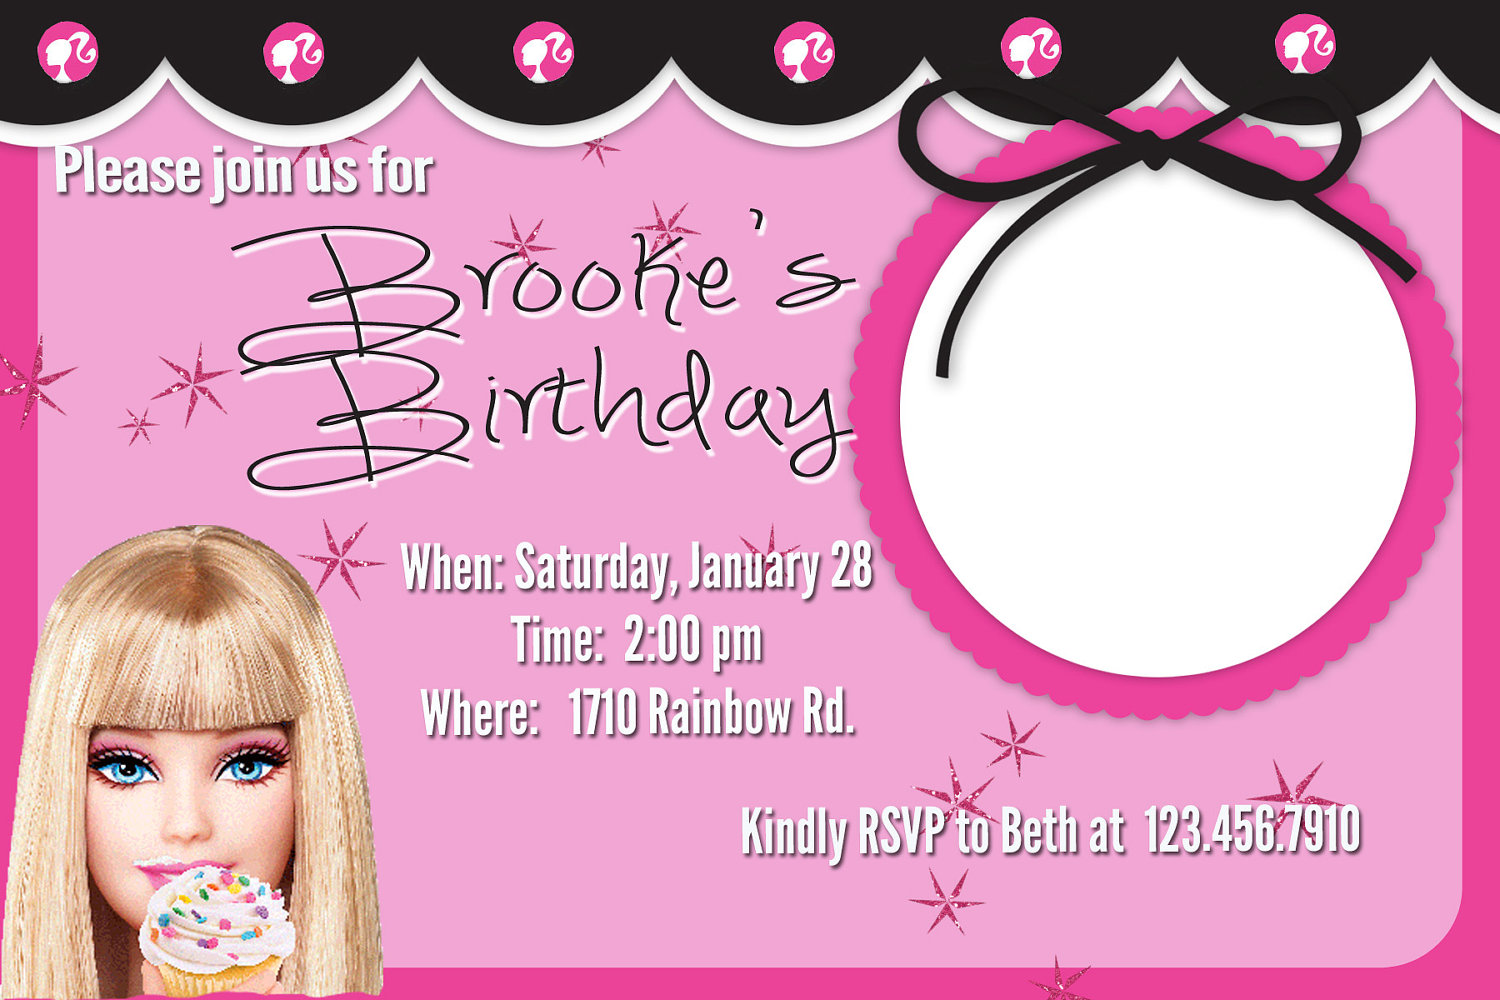 barbie birthday invitation card free printable ; Marvelous-Barbie-Party-Invitations-Which-Can-Be-Used-As-Party-Invitation